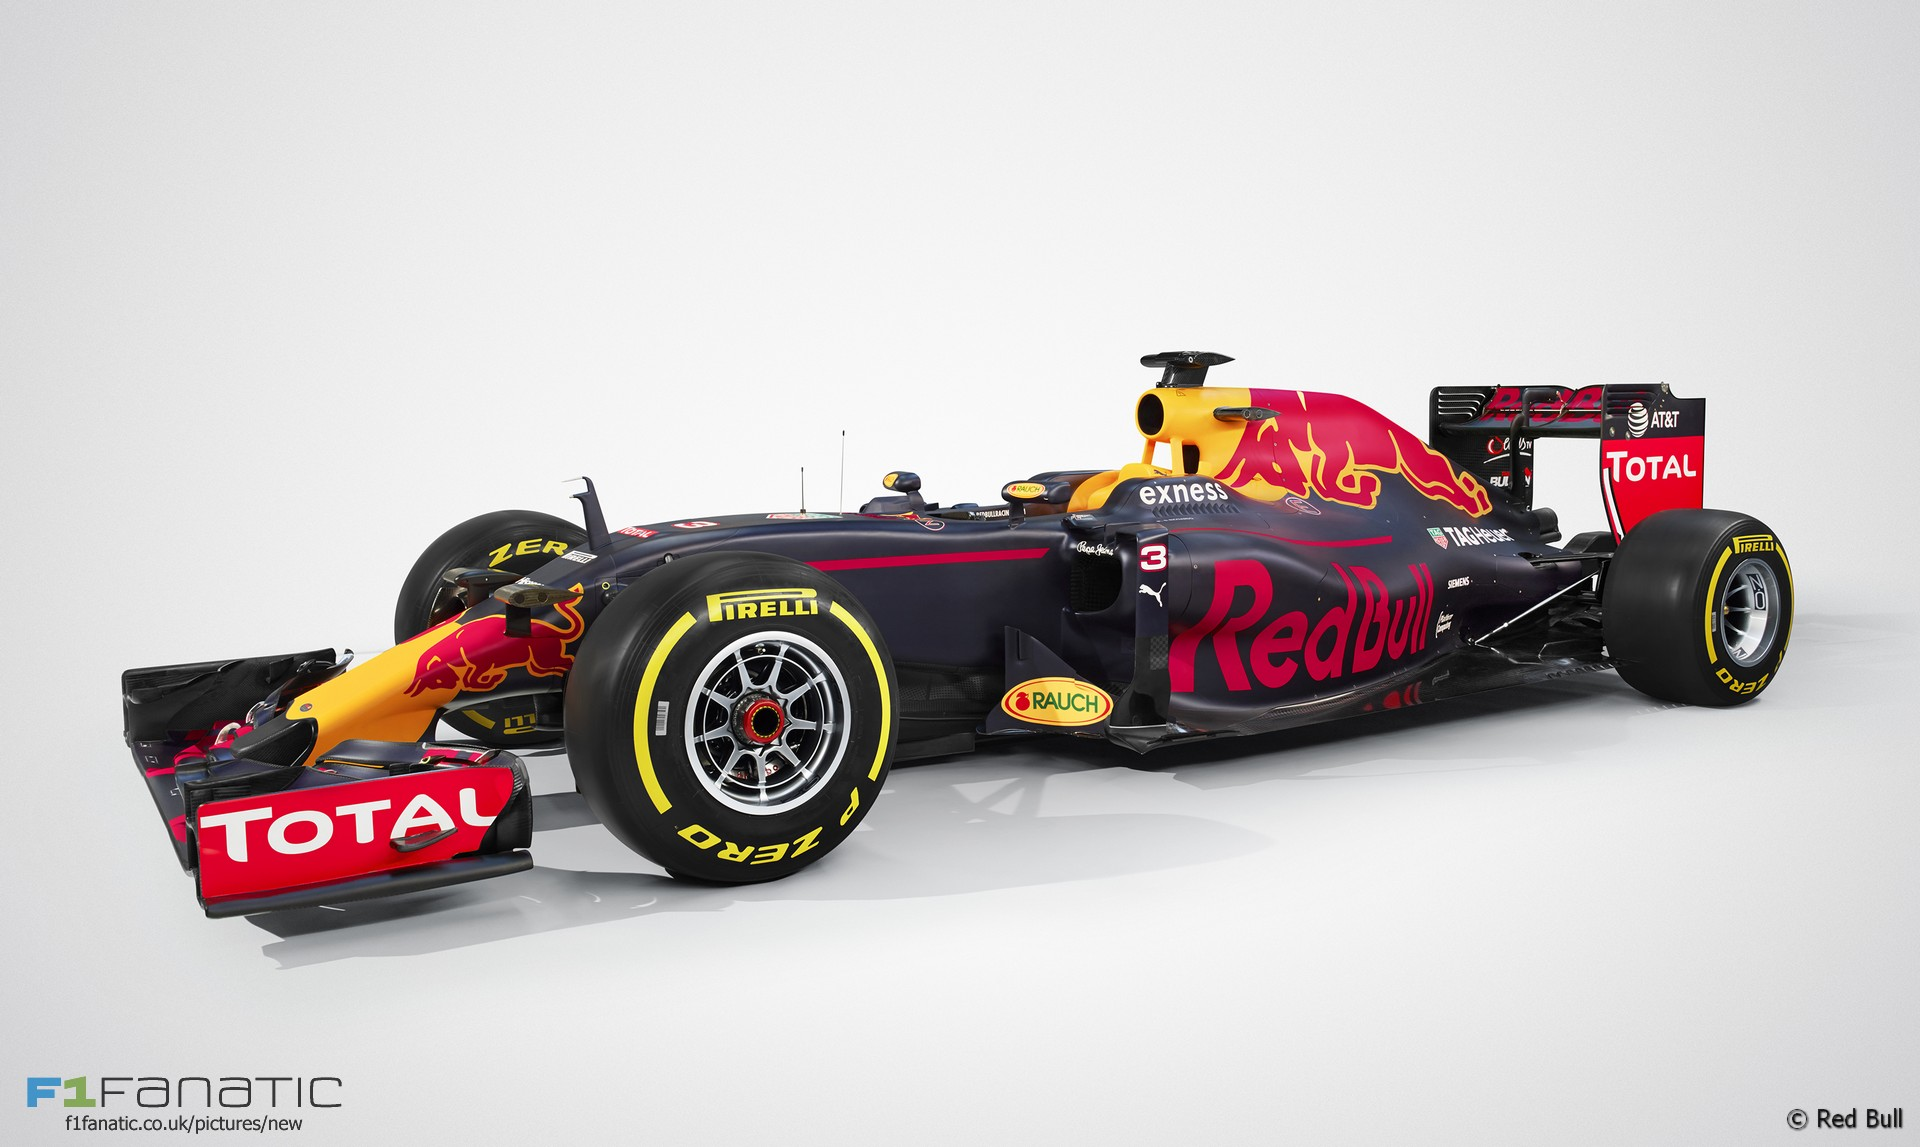 red bull toro rosso and haas launches today f1 fanatic. Black Bedroom Furniture Sets. Home Design Ideas